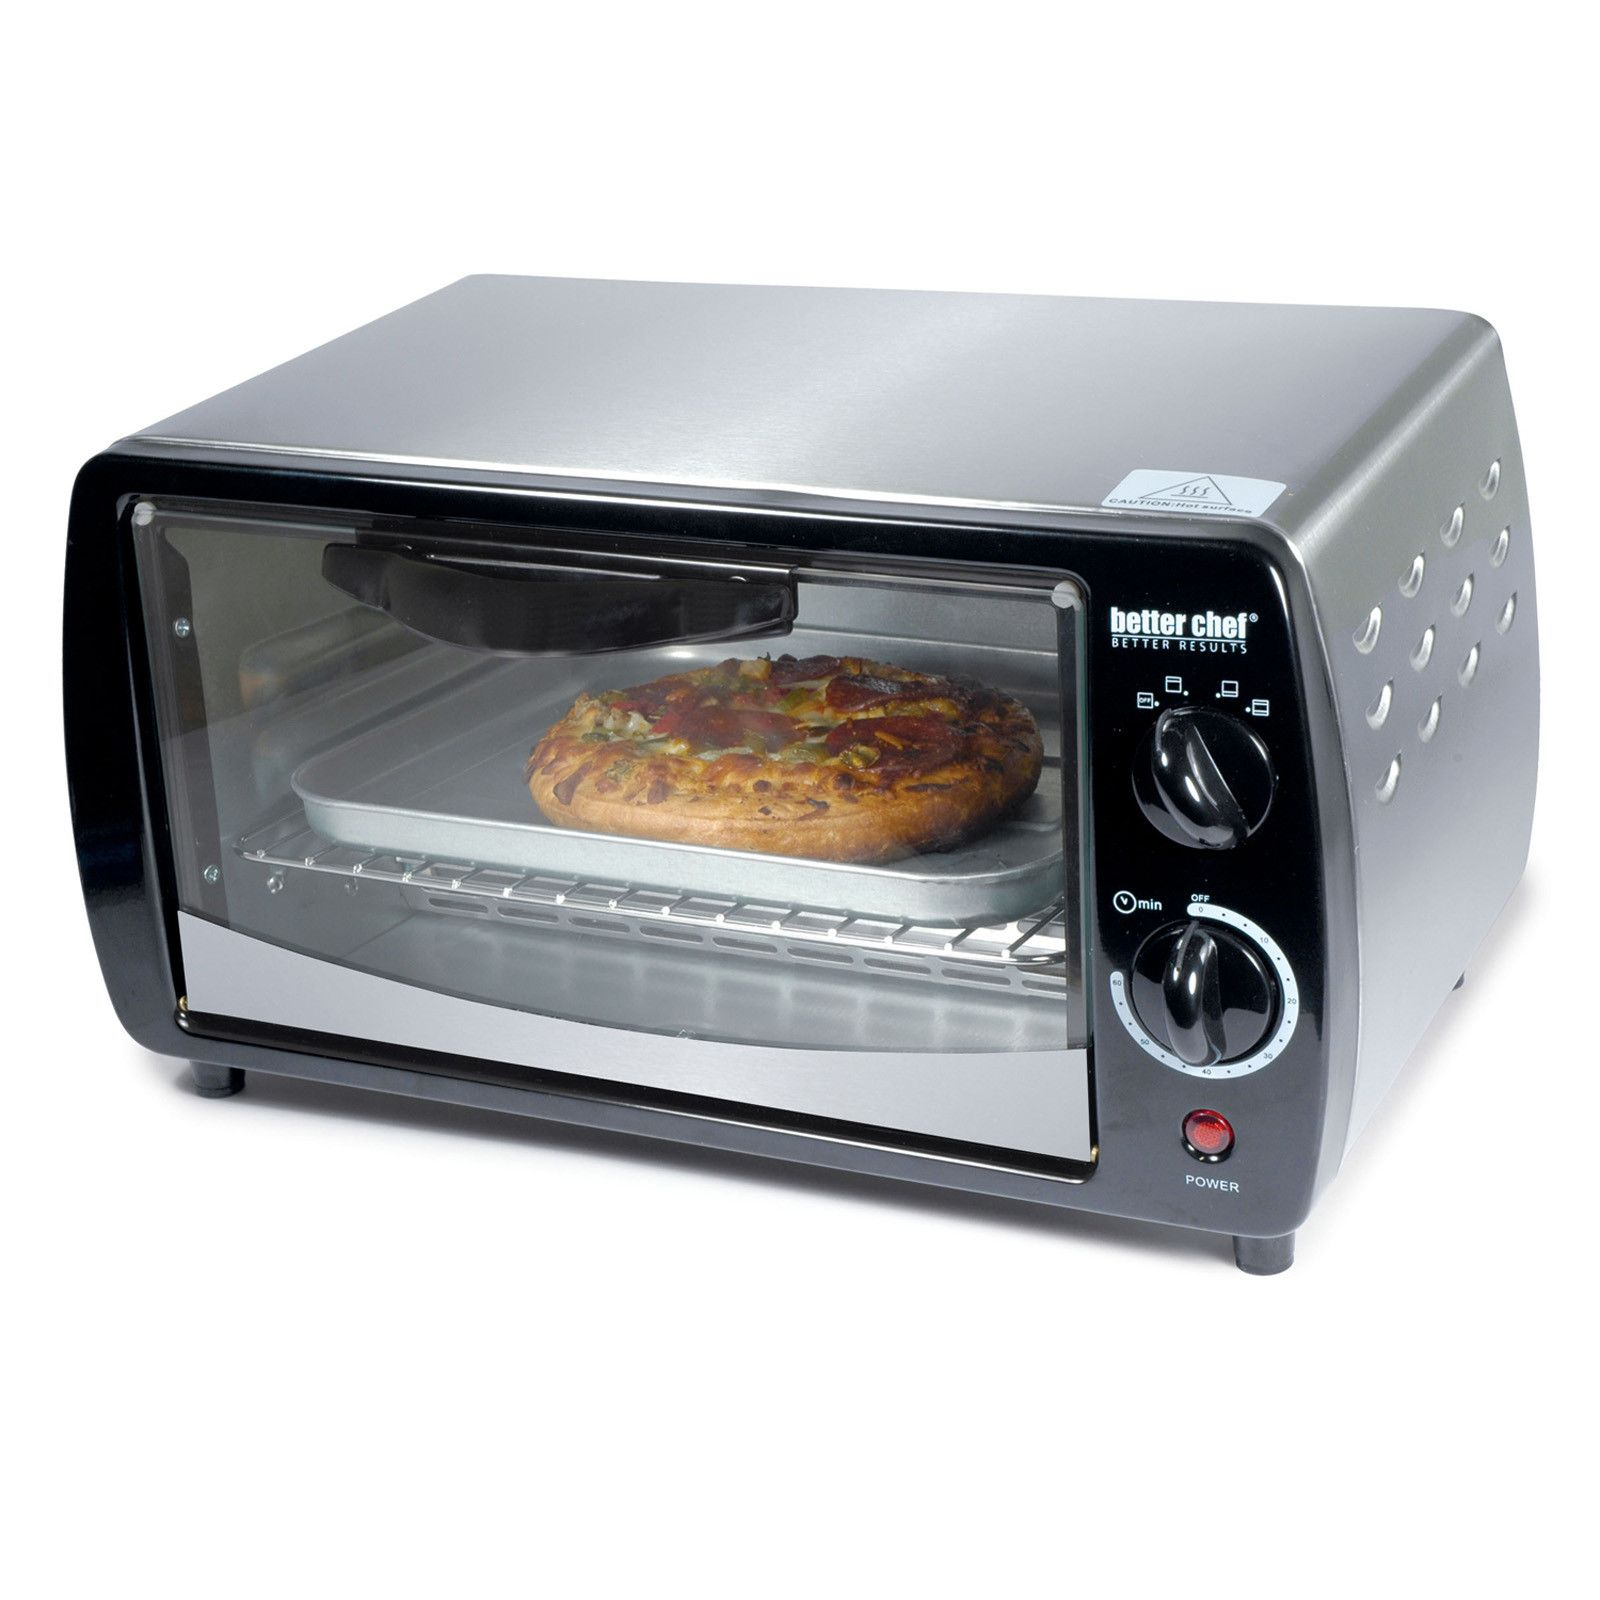 Better Chef 0 3 Cubic Foot Toaster Oven Convection Toaster Oven Toaster Oven Toaster